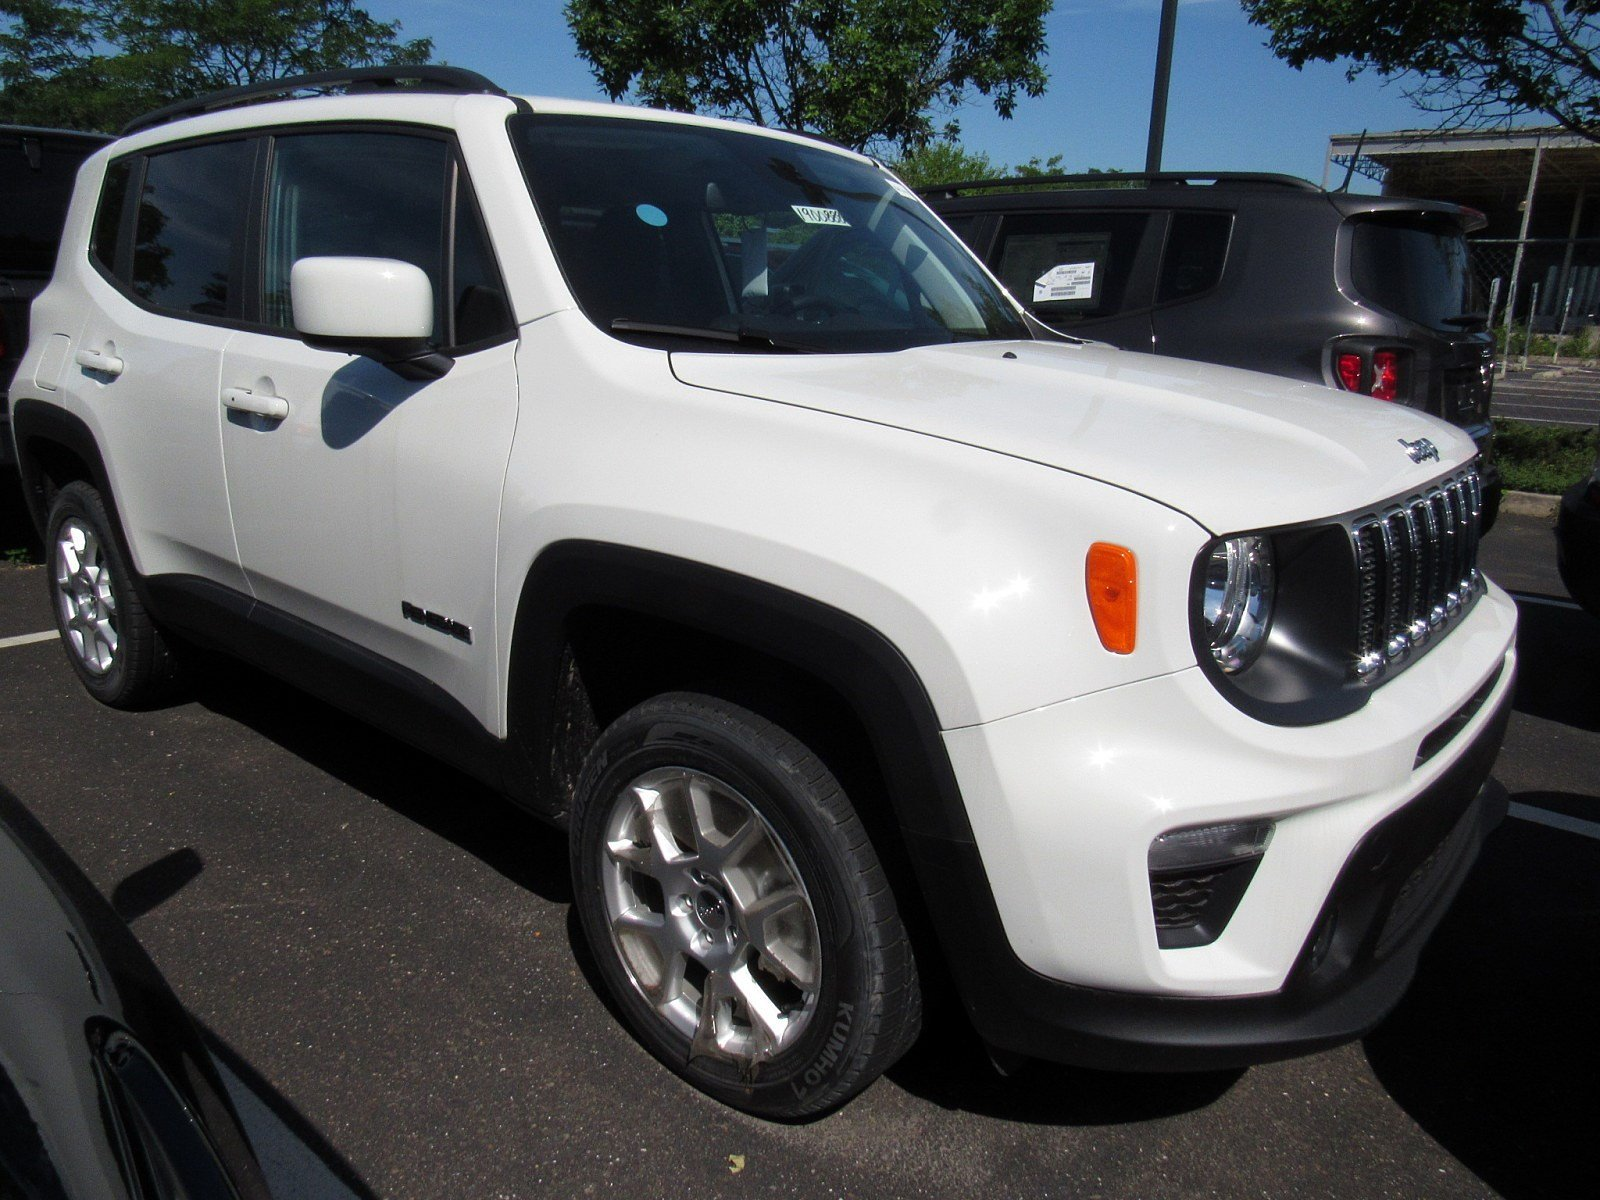 Jeep Springfield Pa >> Chrysler Dodge Jeep Ram For Sale Lease Price Springfield Pa